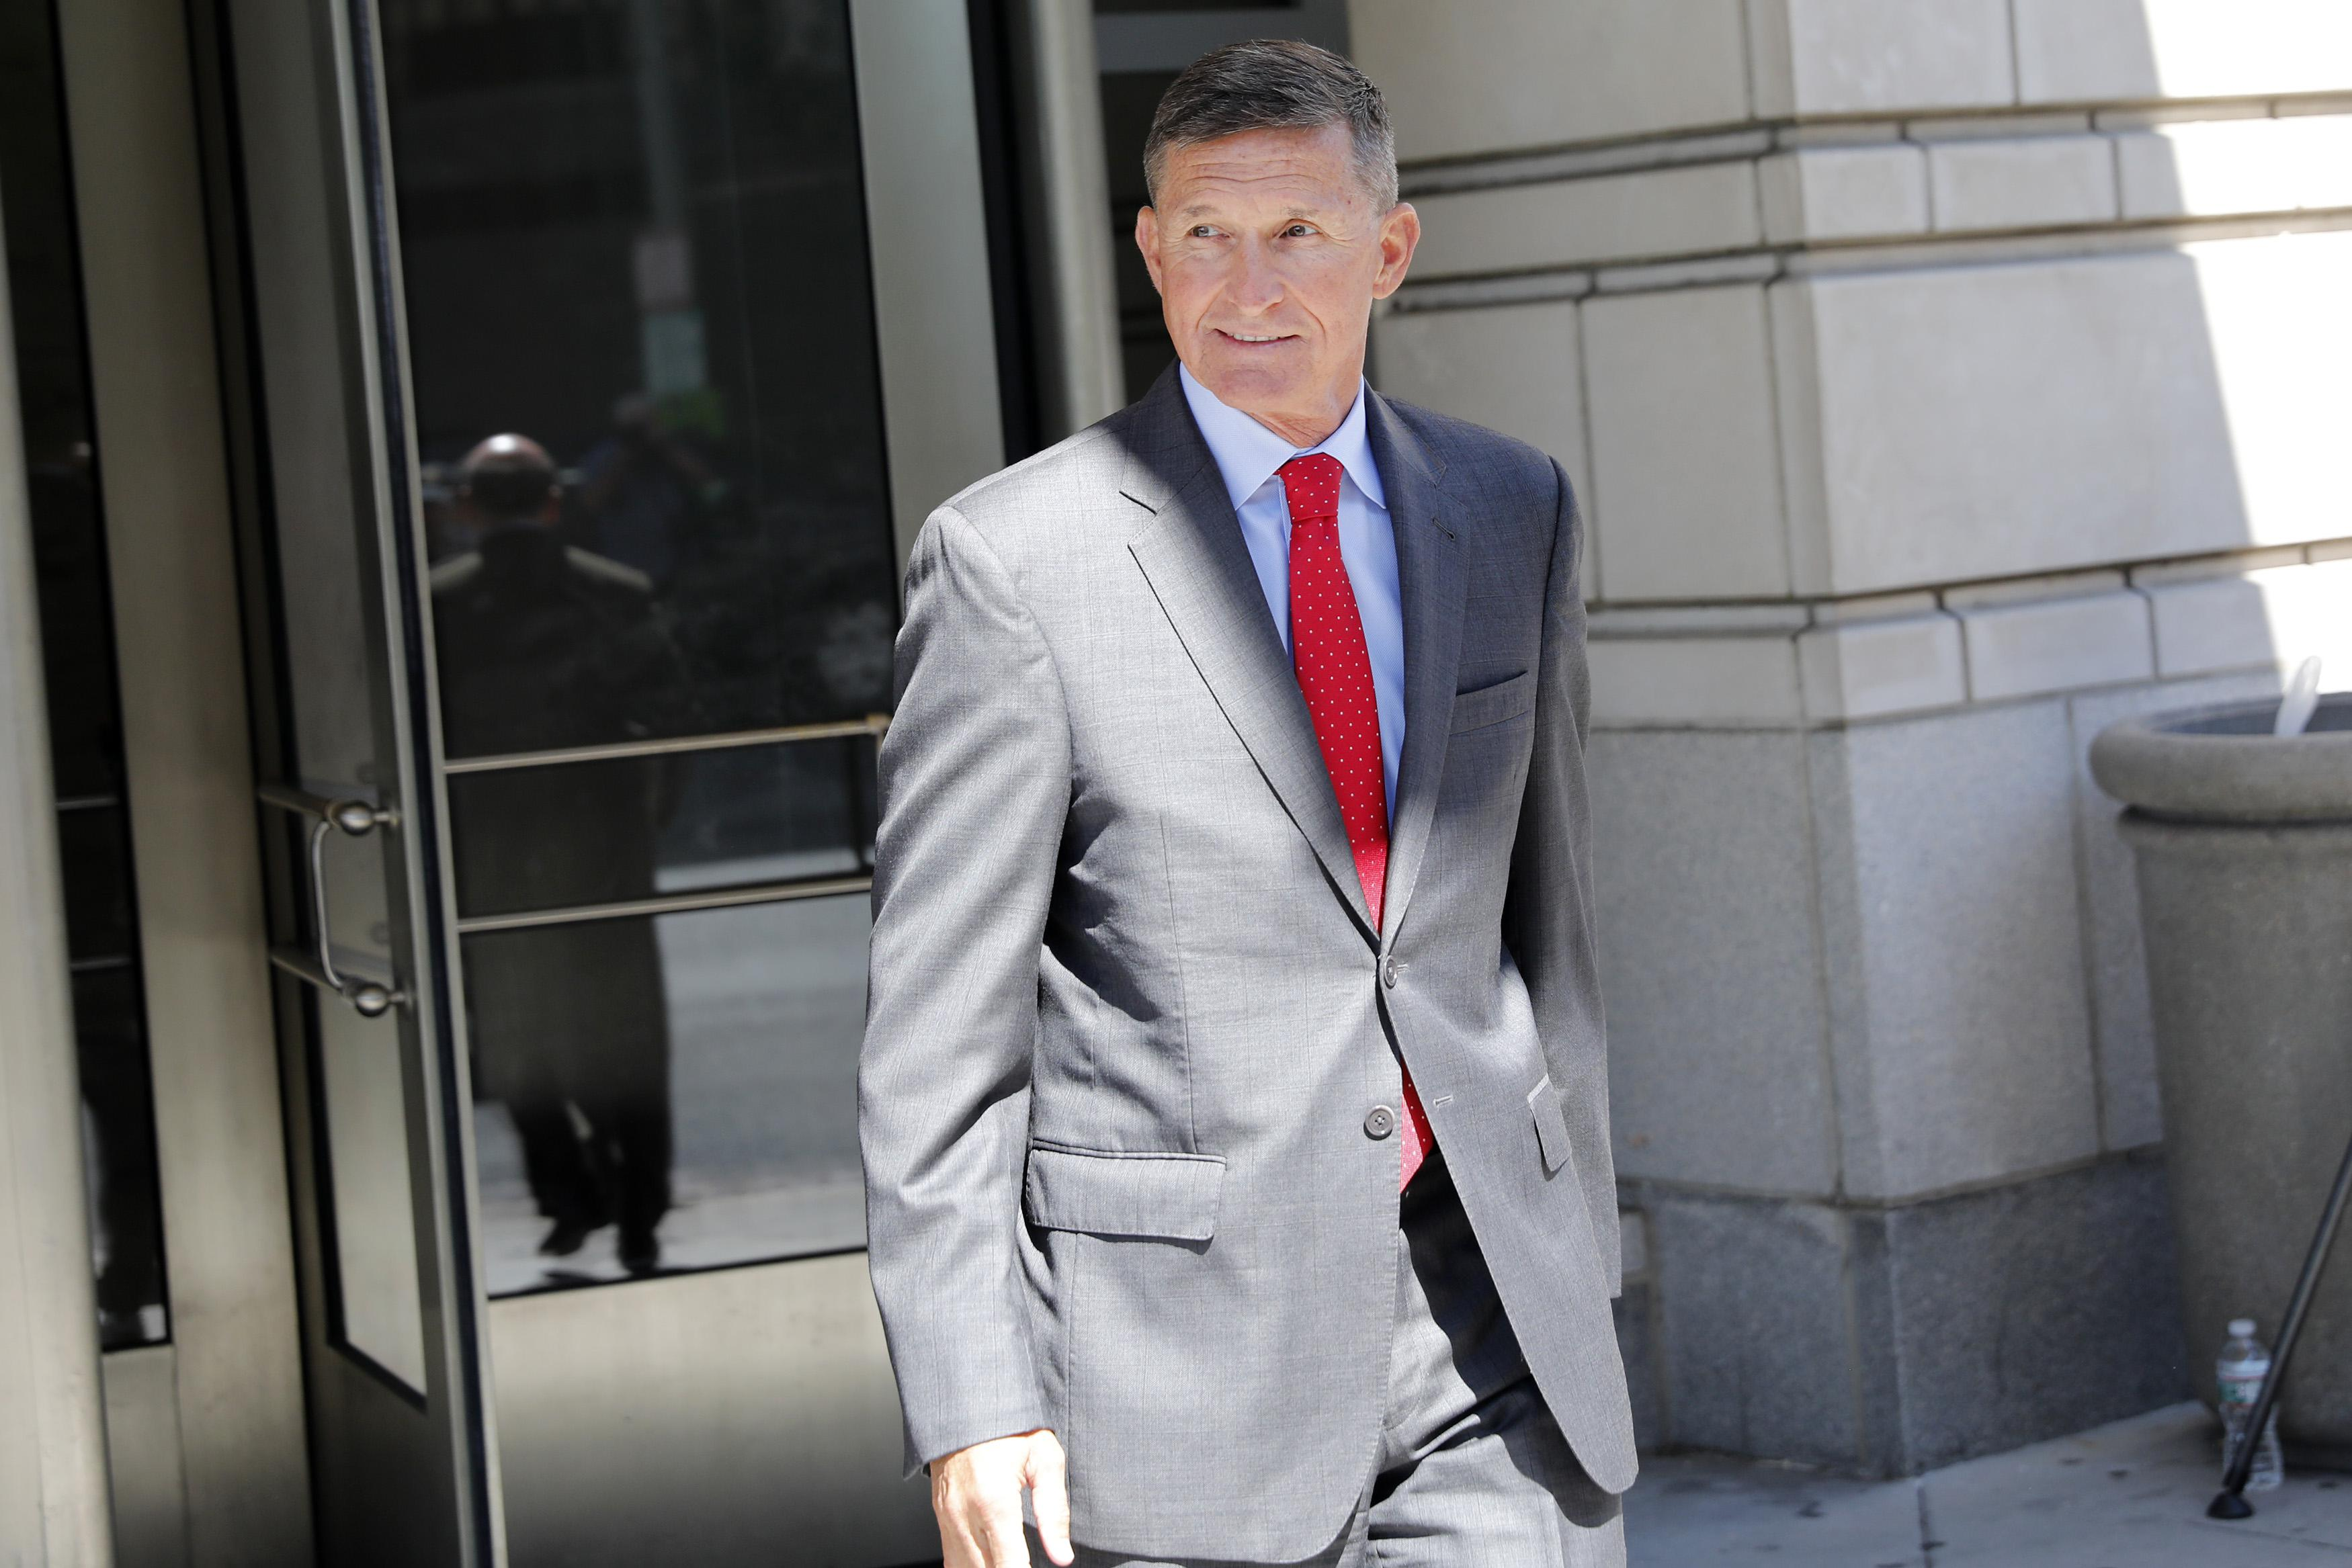 Former National Security Advisor Mike Flynn following a hearing July 10, 2018 in Washington, DC.